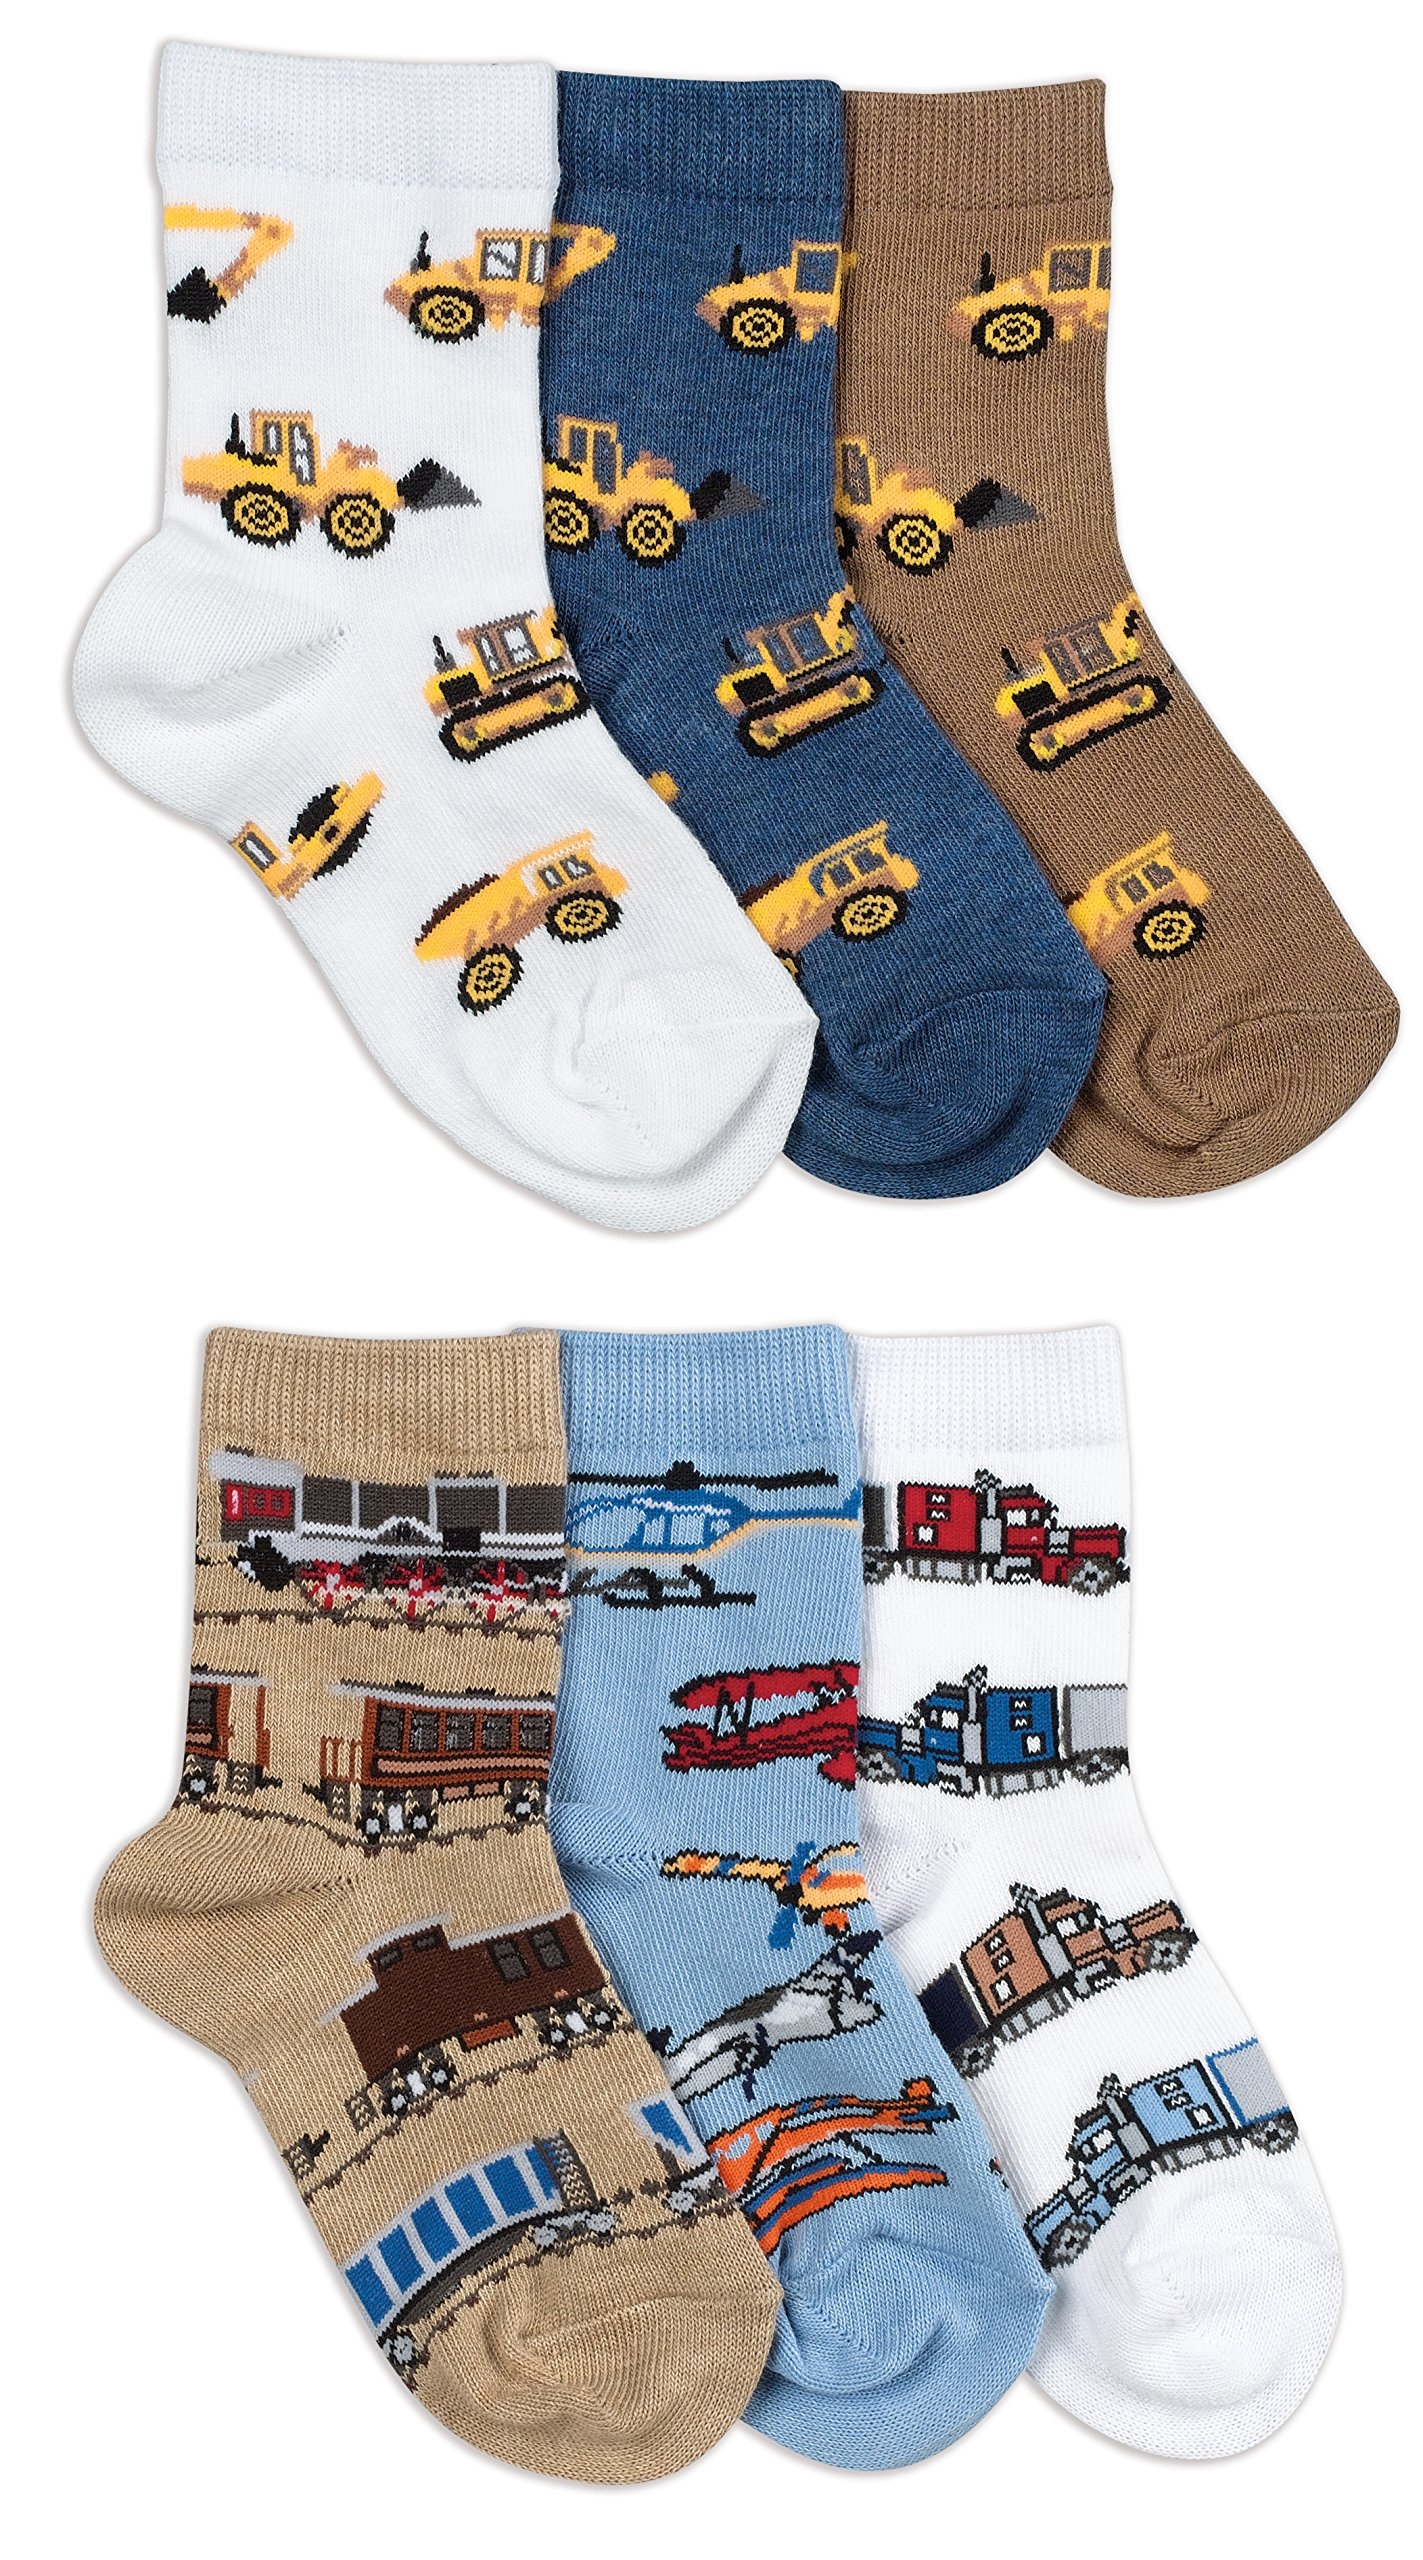 Jefferies Socks Boys Construction/Transportation Pattern Socks 6 Pair Pack (S - USA Shoe 9-1 - Age 3-7 Years)